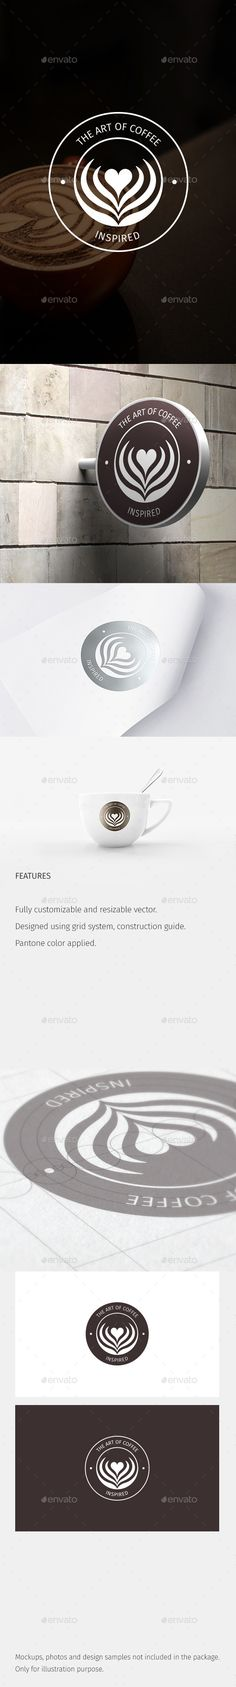 The Art of Coffee Logo Template Vector EPS, AI Illustrator. Download here: http://graphicriver.net/item/the-art-of-coffee-logo/14903257?ref=ksioks